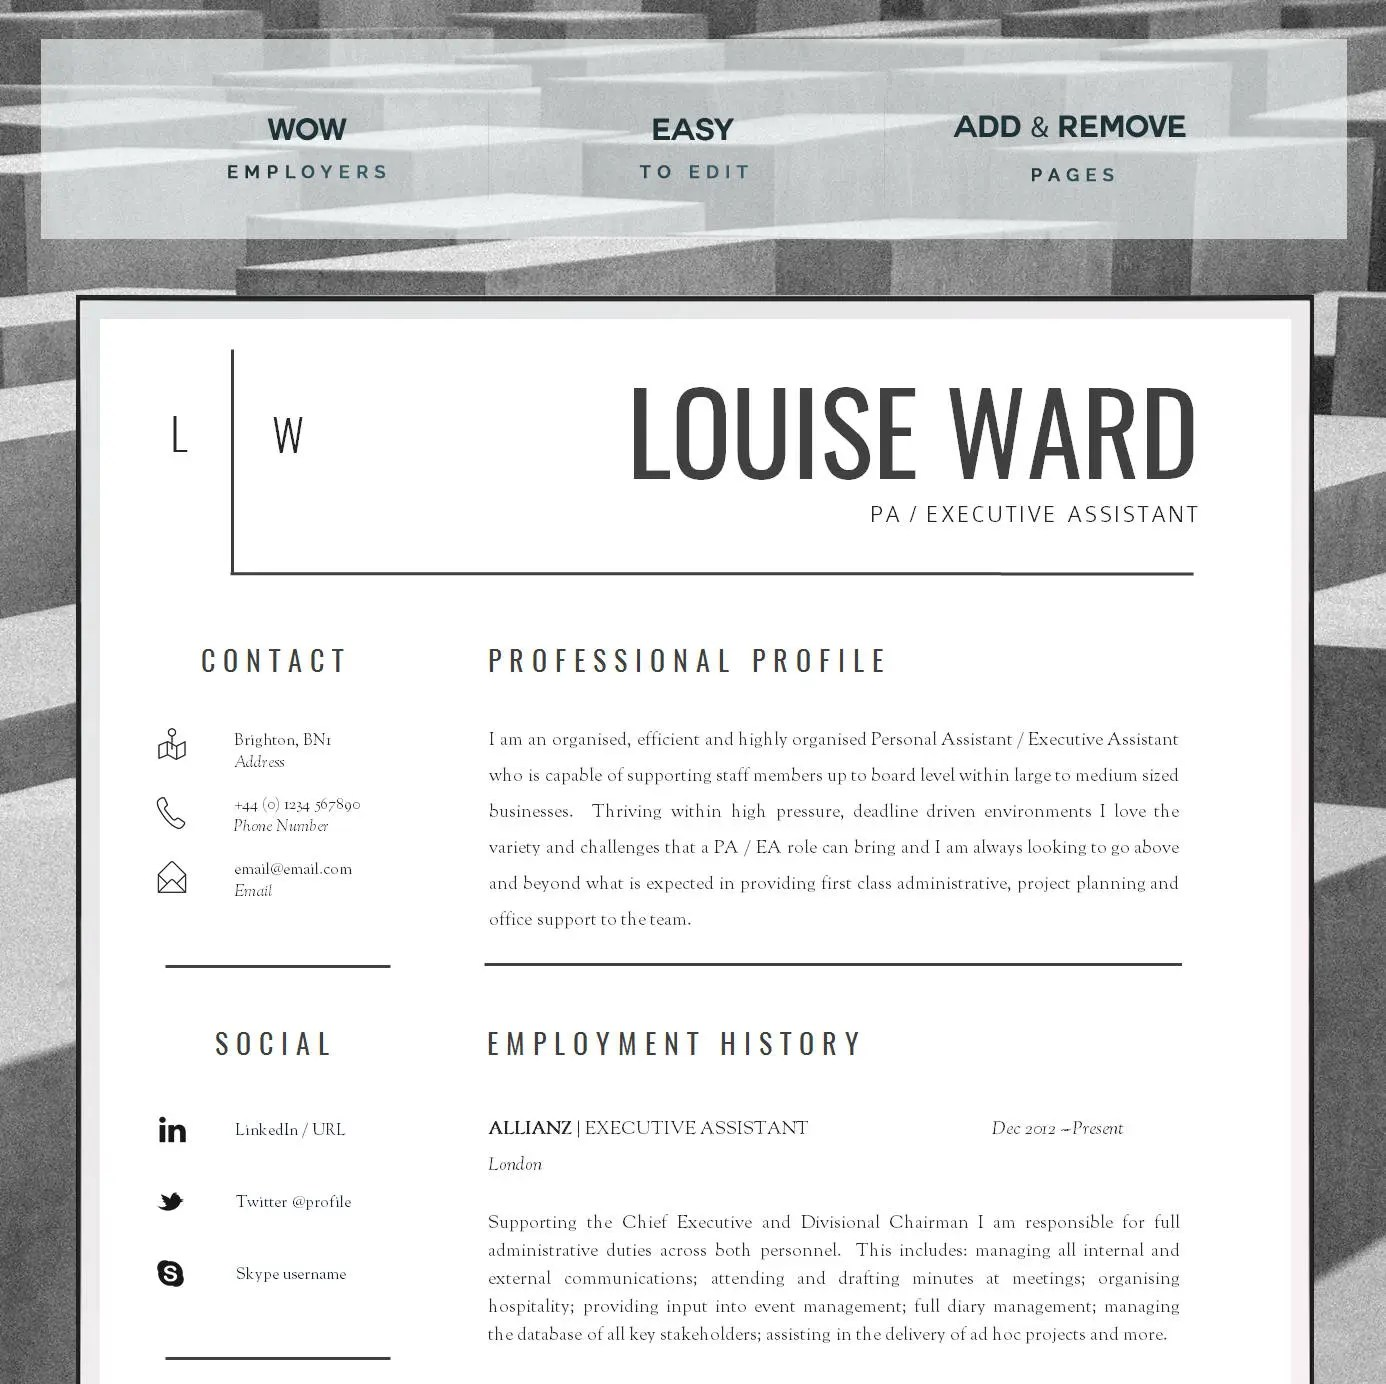 Resume Template CV Template Cover Letter Resume Advice - cover letter samples for resume